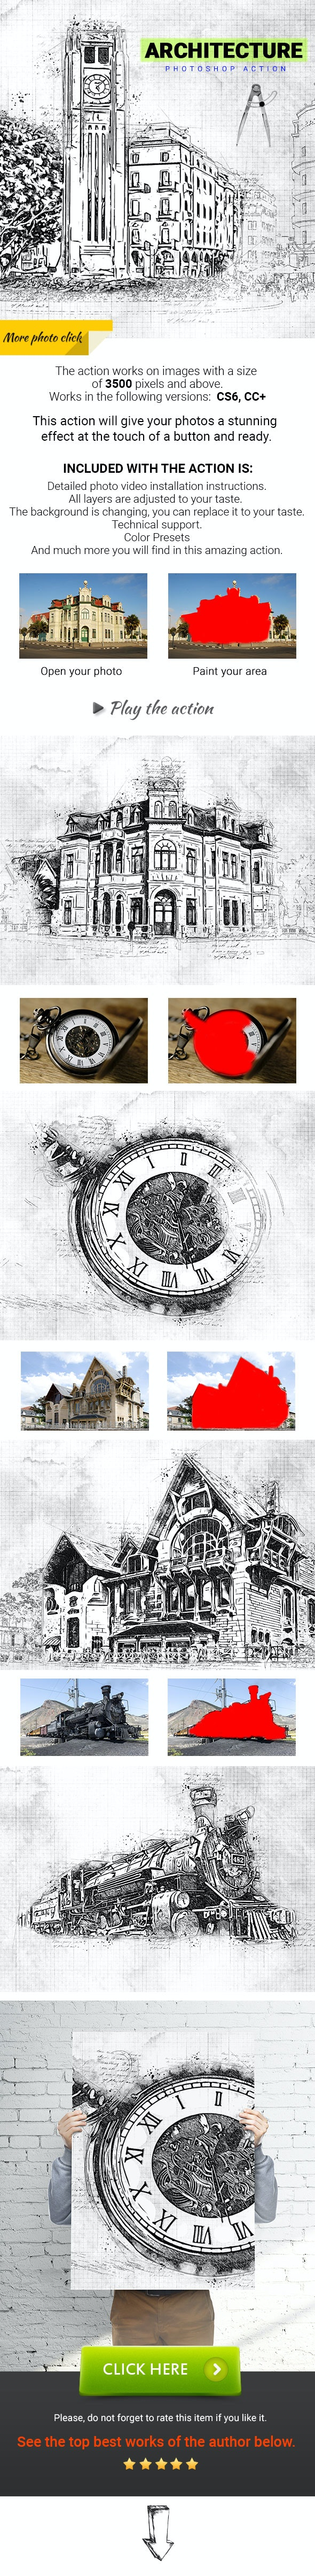 Architecture Photoshop Action - Photo Effects Actions